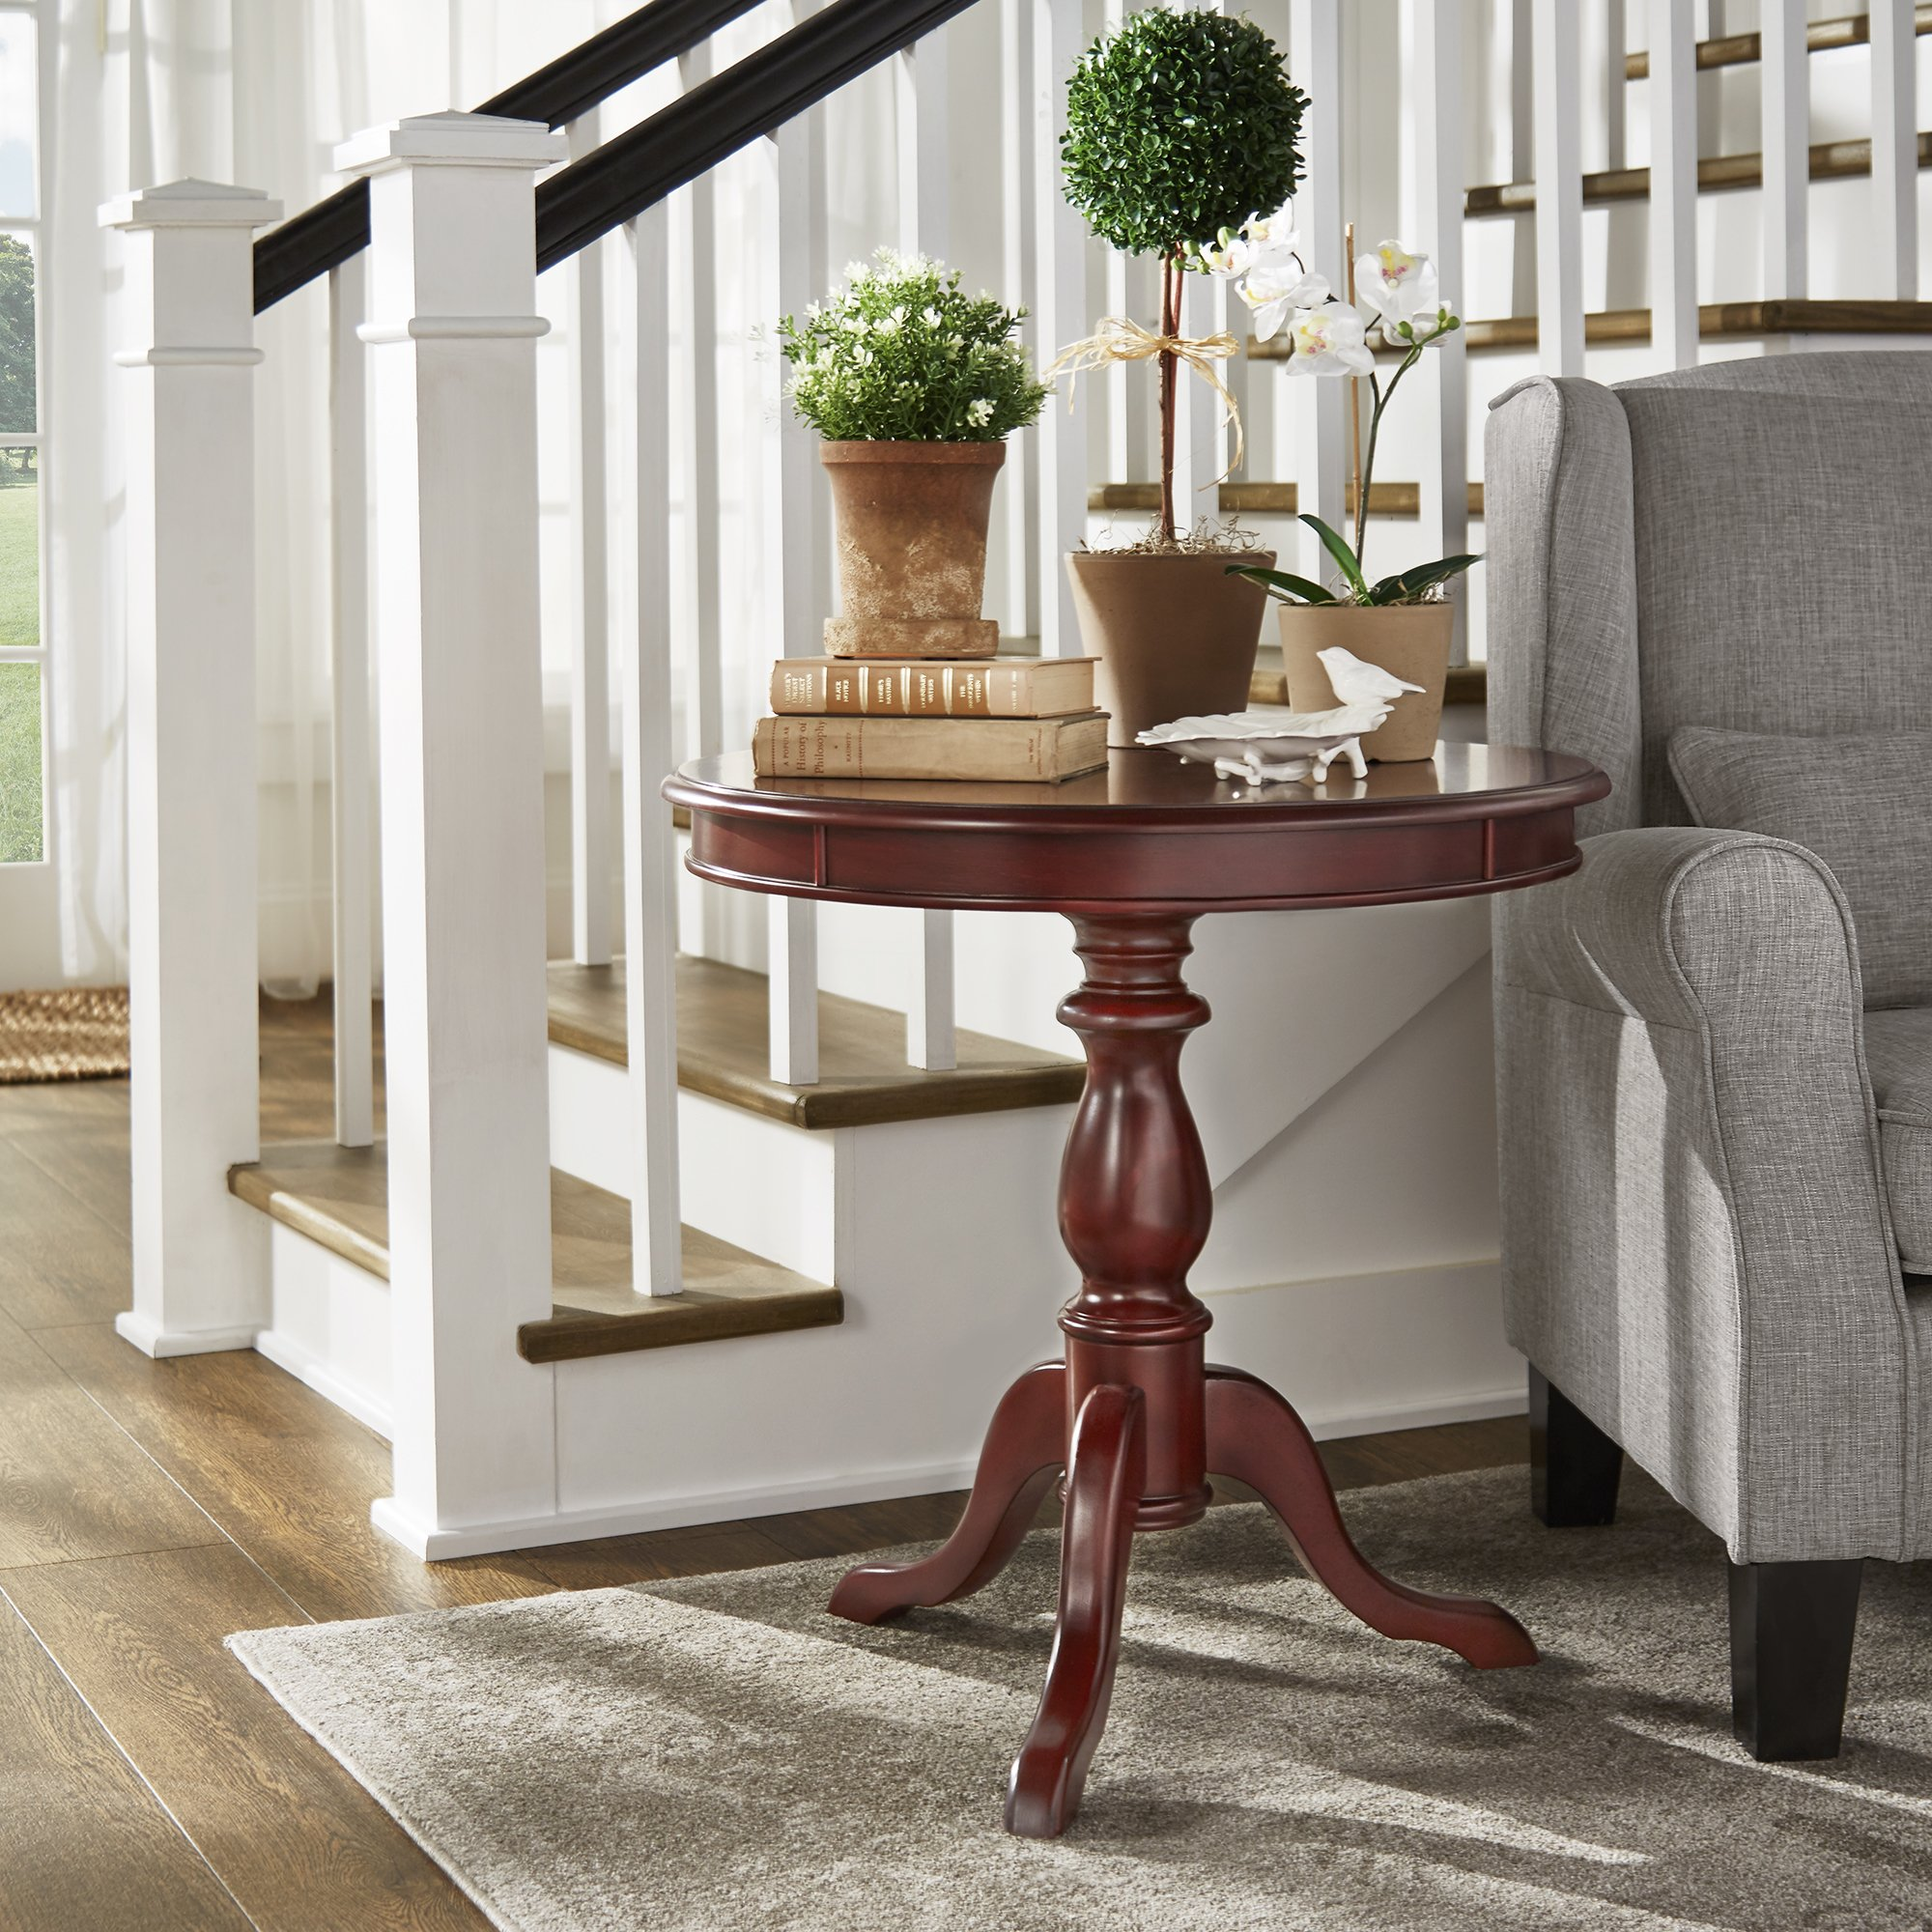 beckett antique wood pedestal accent table inspire classic oak free shipping today square garden cover round nest coffee tables marble stone gold mirror couch stained glass floor